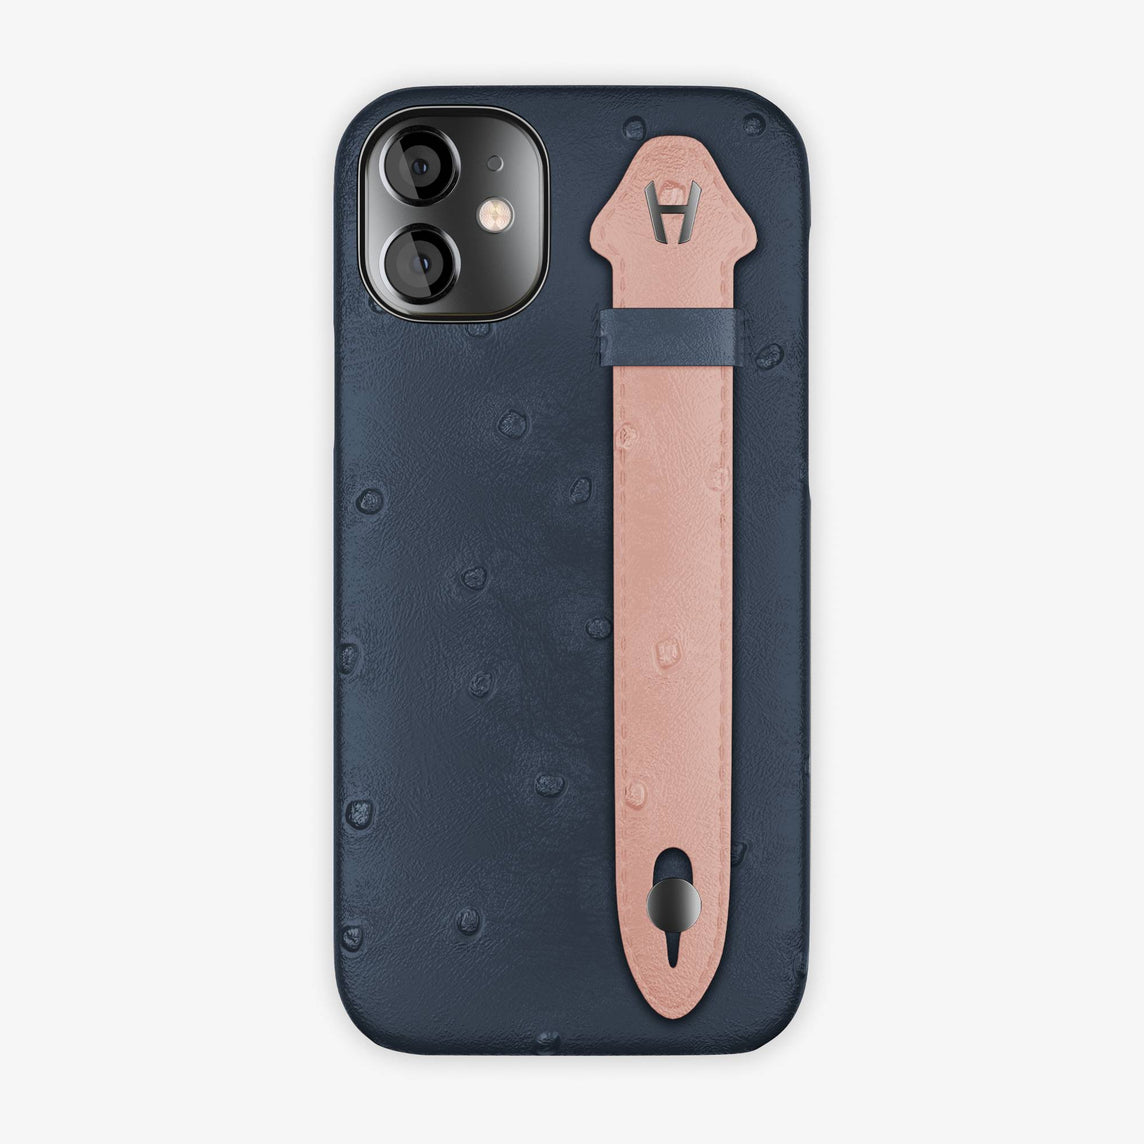 Ostrich Side Finger Case iPhone 12 Mini | Navy Blue/Pink - Black